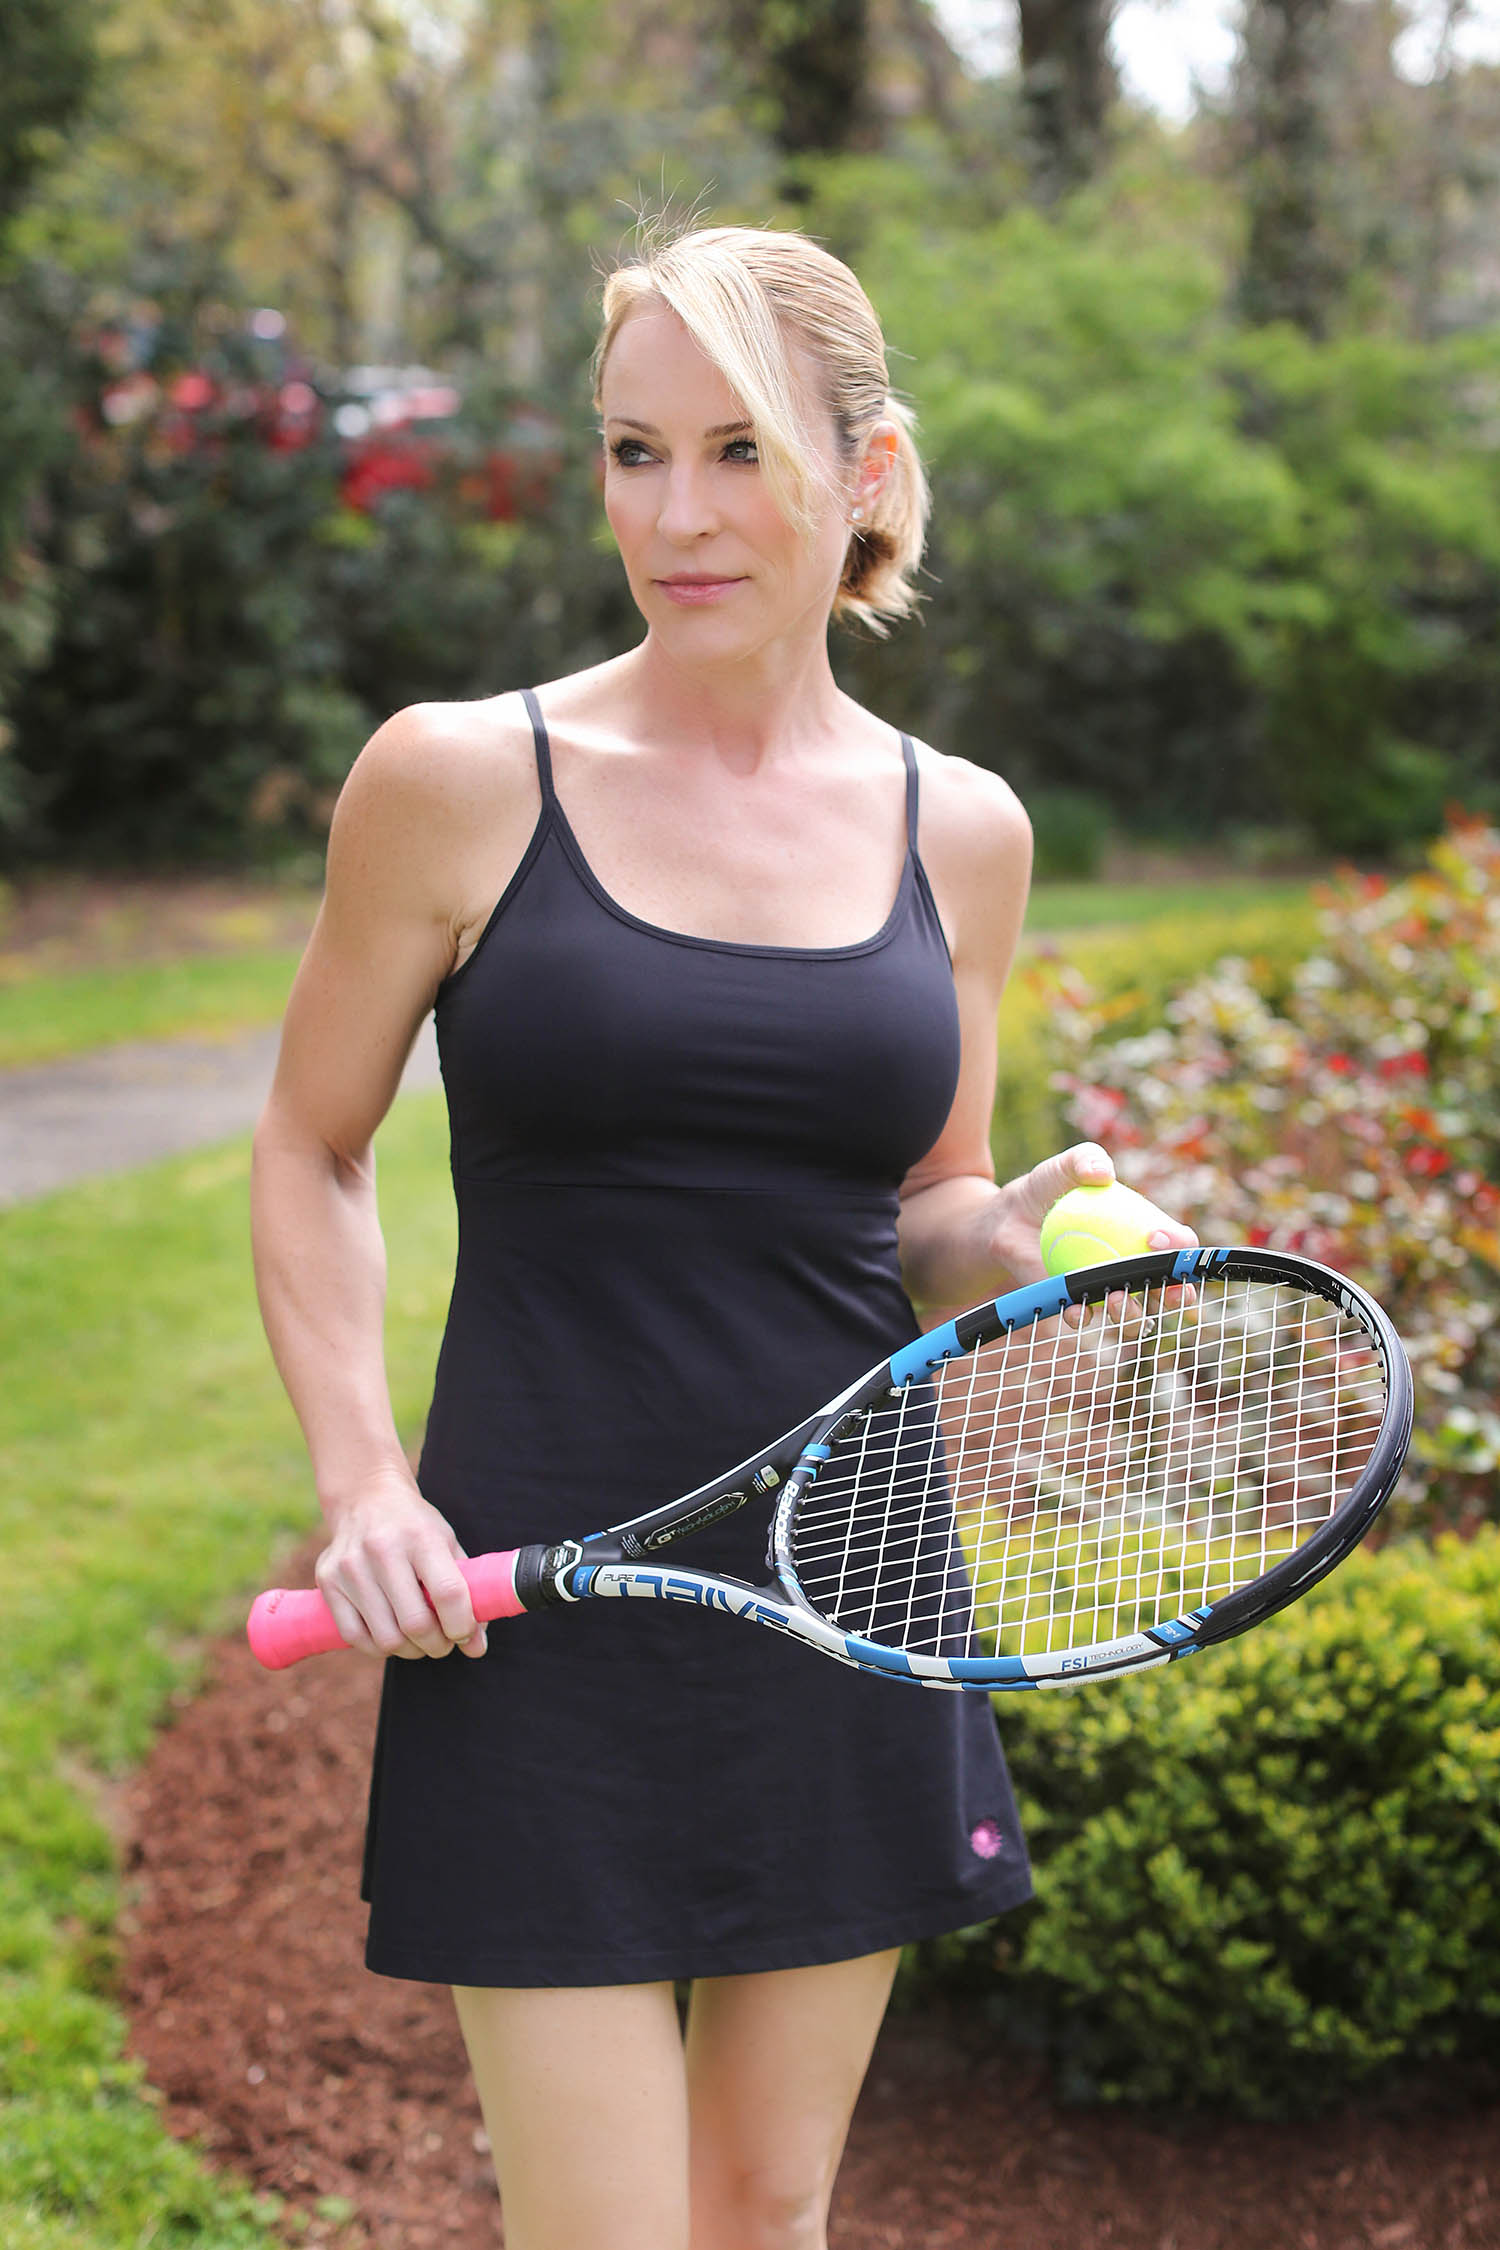 Sharyn-Carroll-tennis.jpg